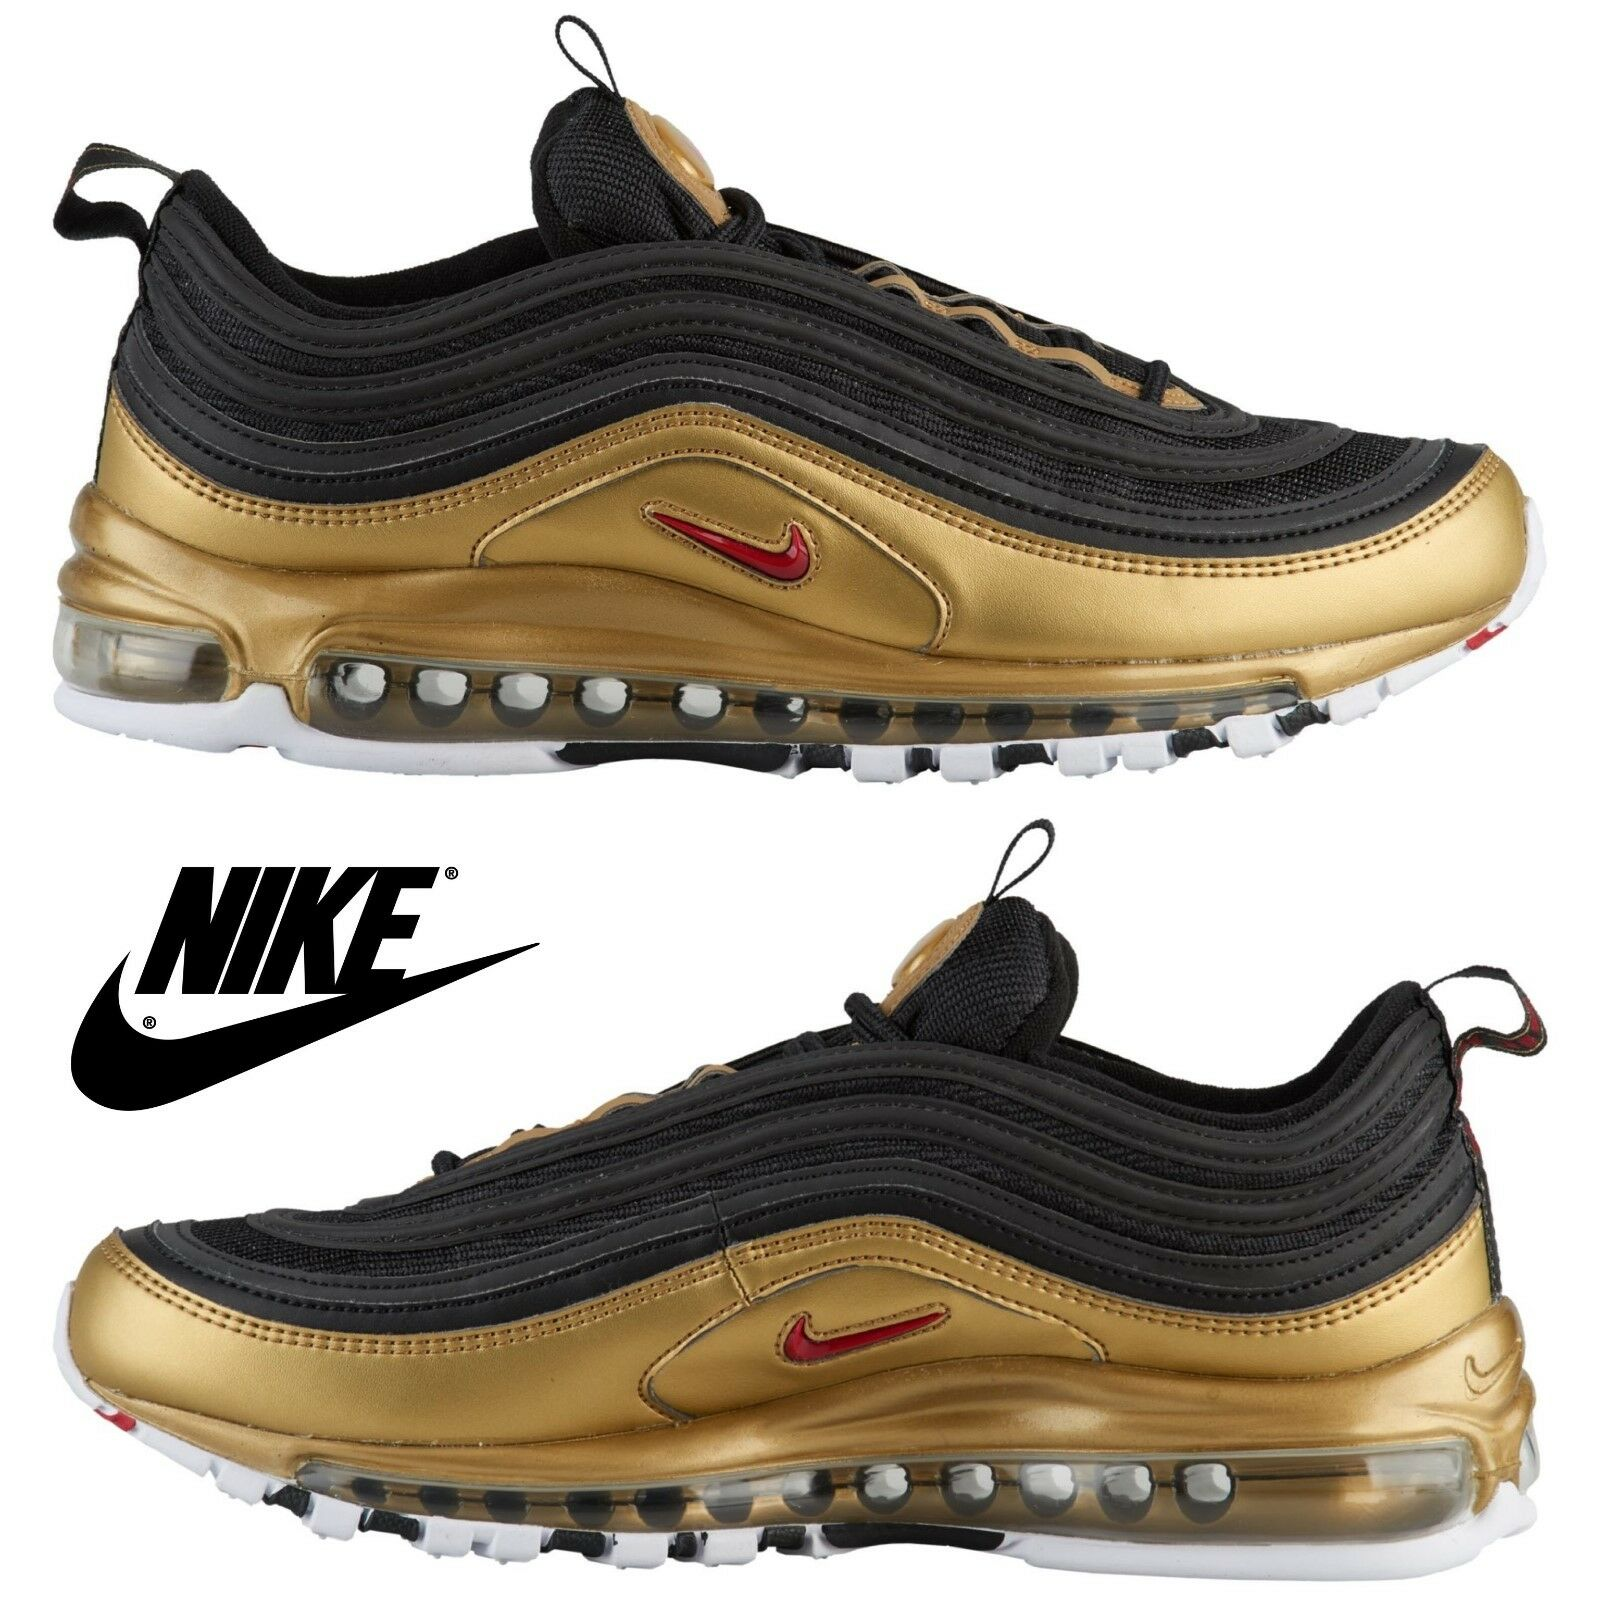 Nike Air Max 97 Men's Sneakers Casual Athletic Premium Comfort Sport Premium NIB